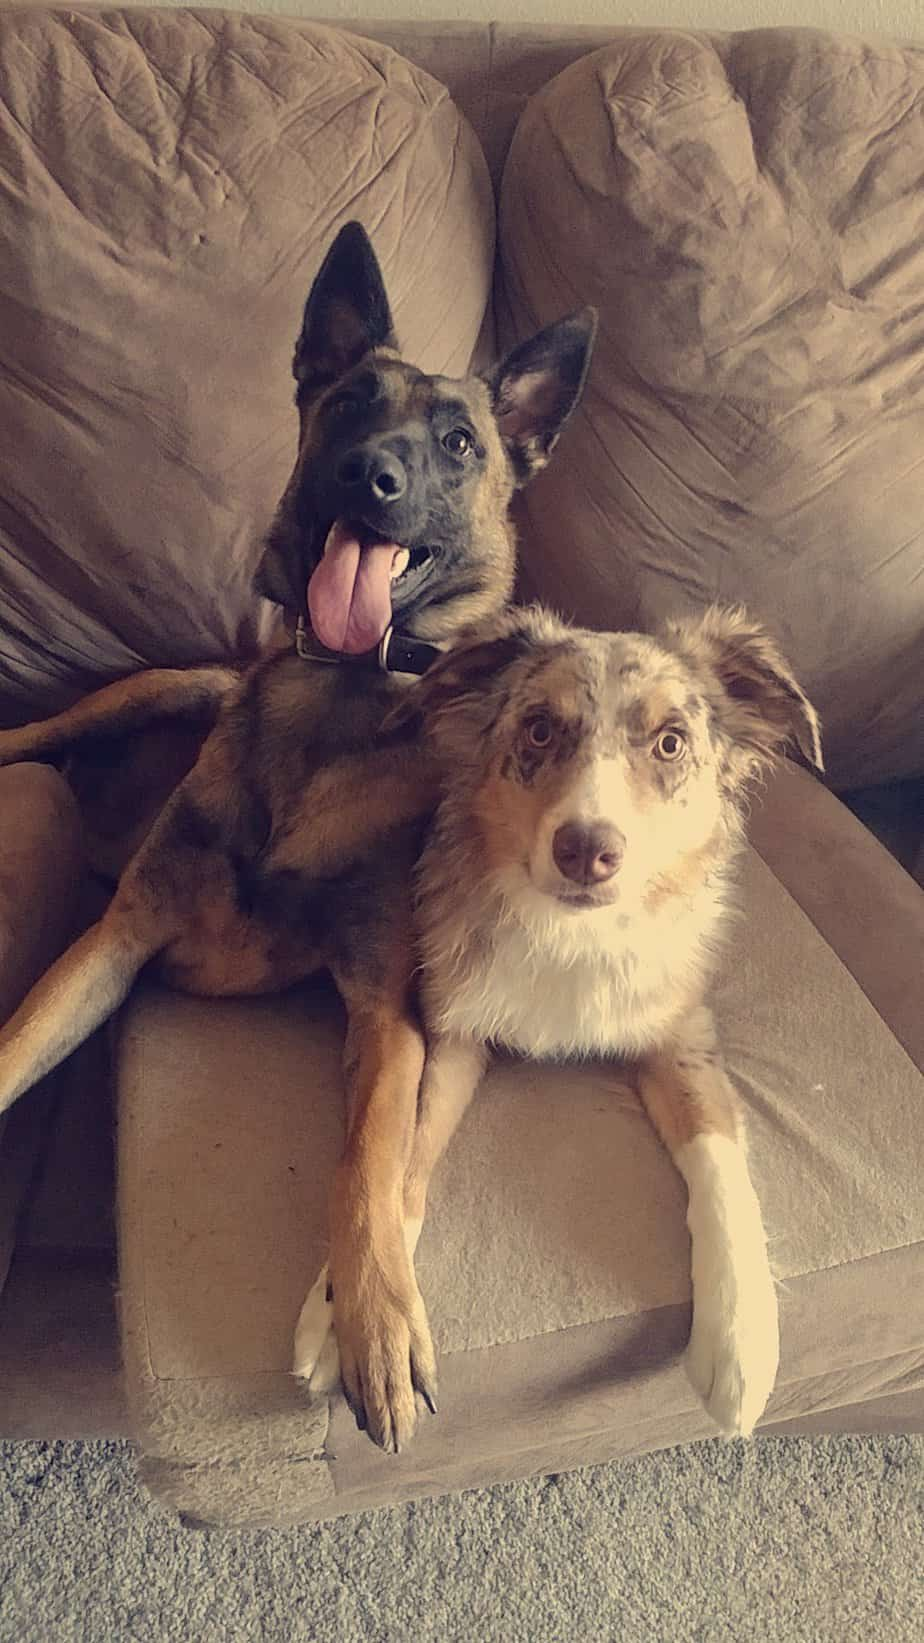 Kevin Ruiz's 2 dogs Oakley and Copper. A Belgian Malinois and an Australian Shepherd.